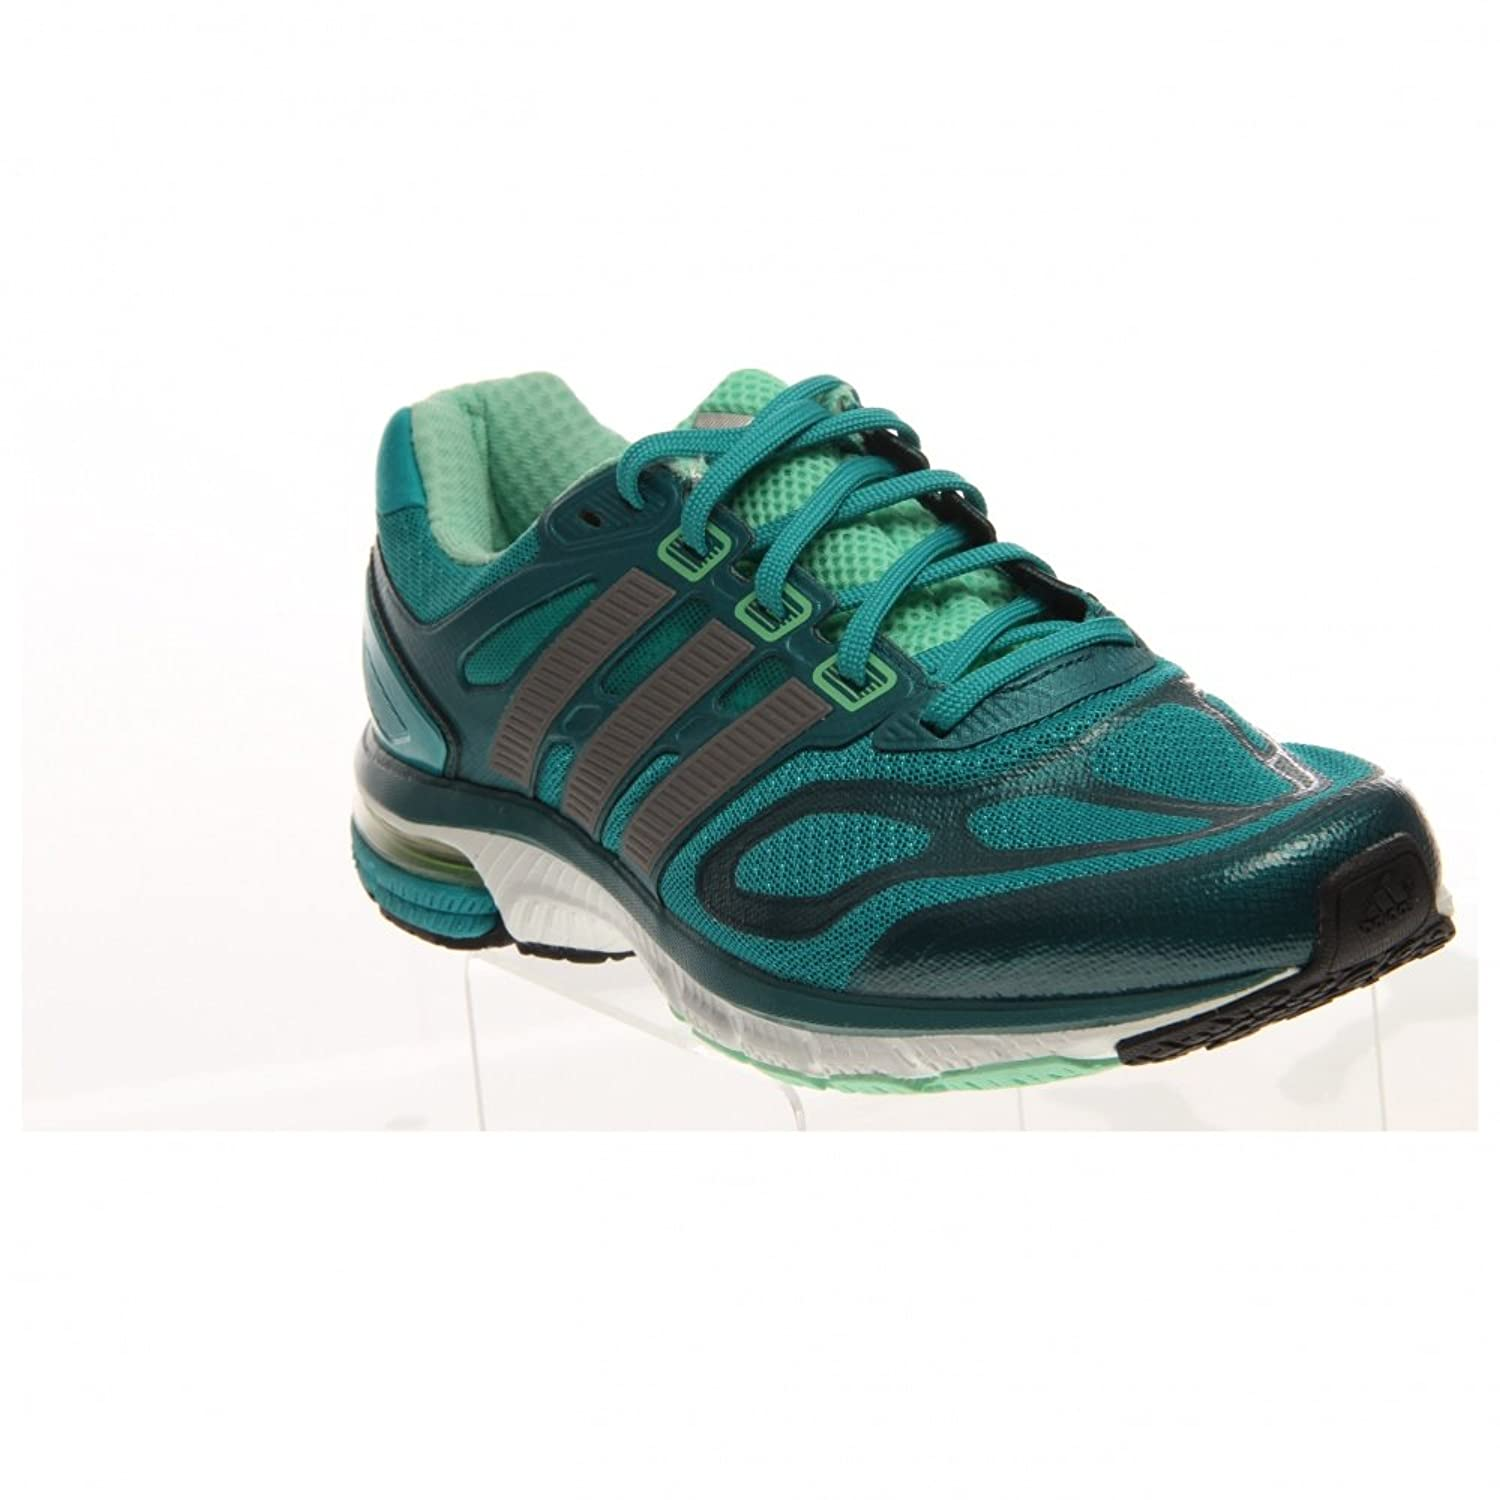 249b2be33 hot sale Adidas Supernova Sequence 6 Neo Iron Womens Running Shoes ...